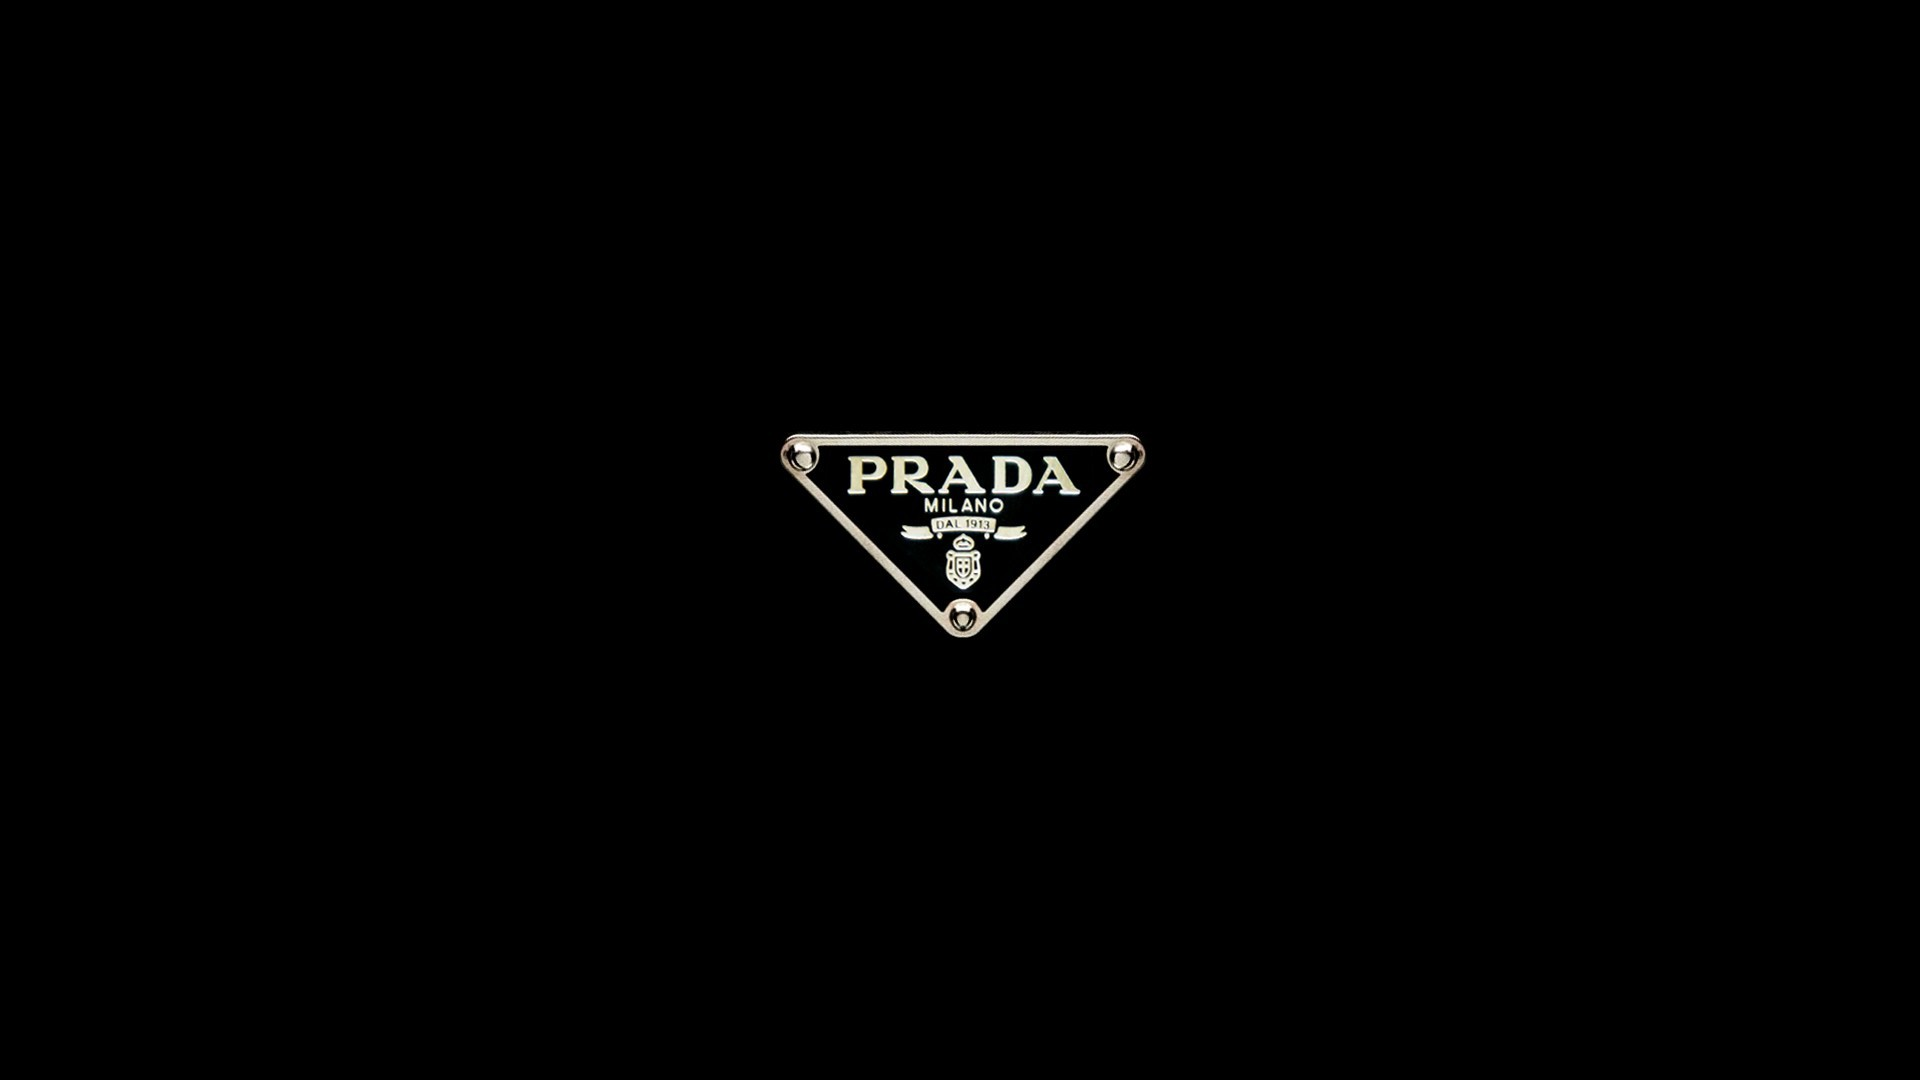 Italian clothing manufacturer Prada wallpapers and images   wallpapers 1920x1080